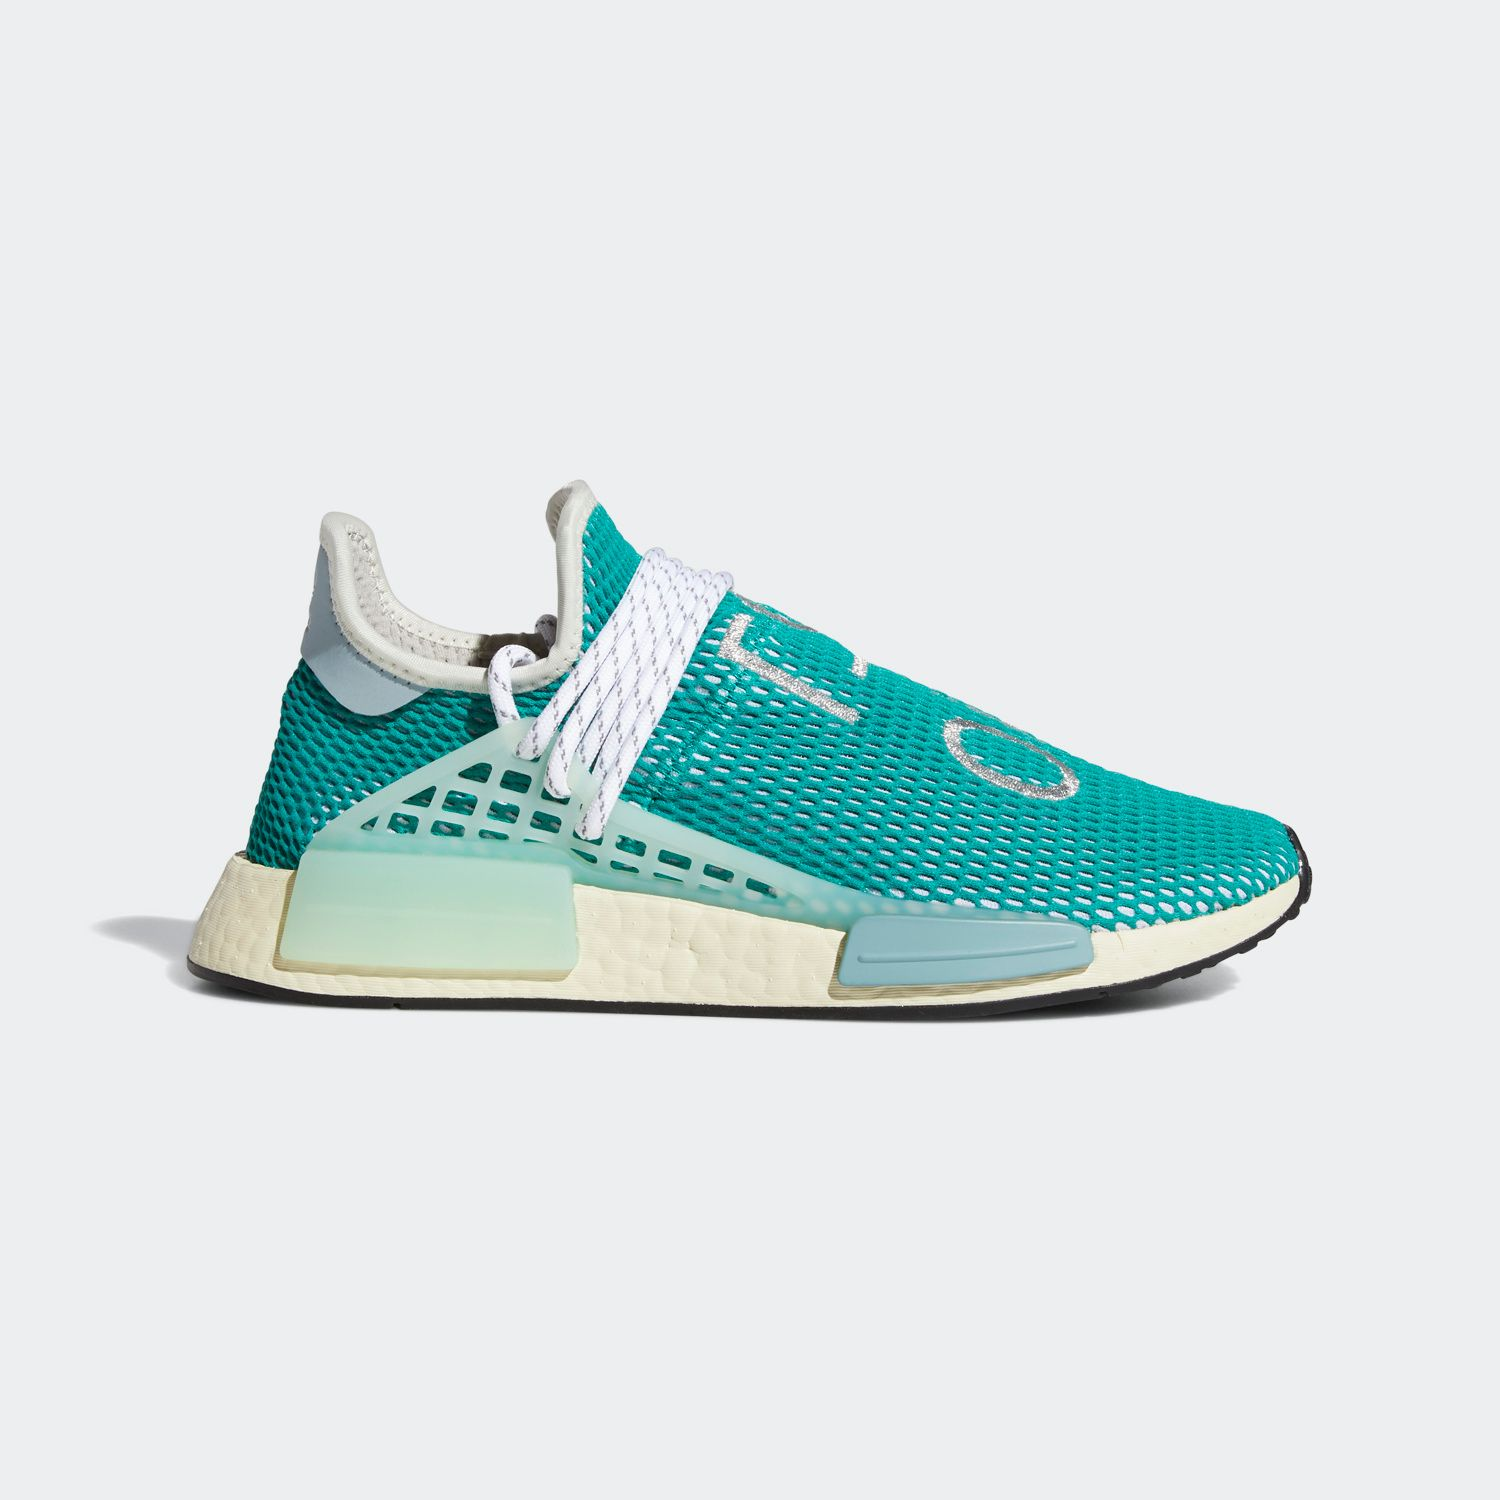 HU NMD Dash Green [1]